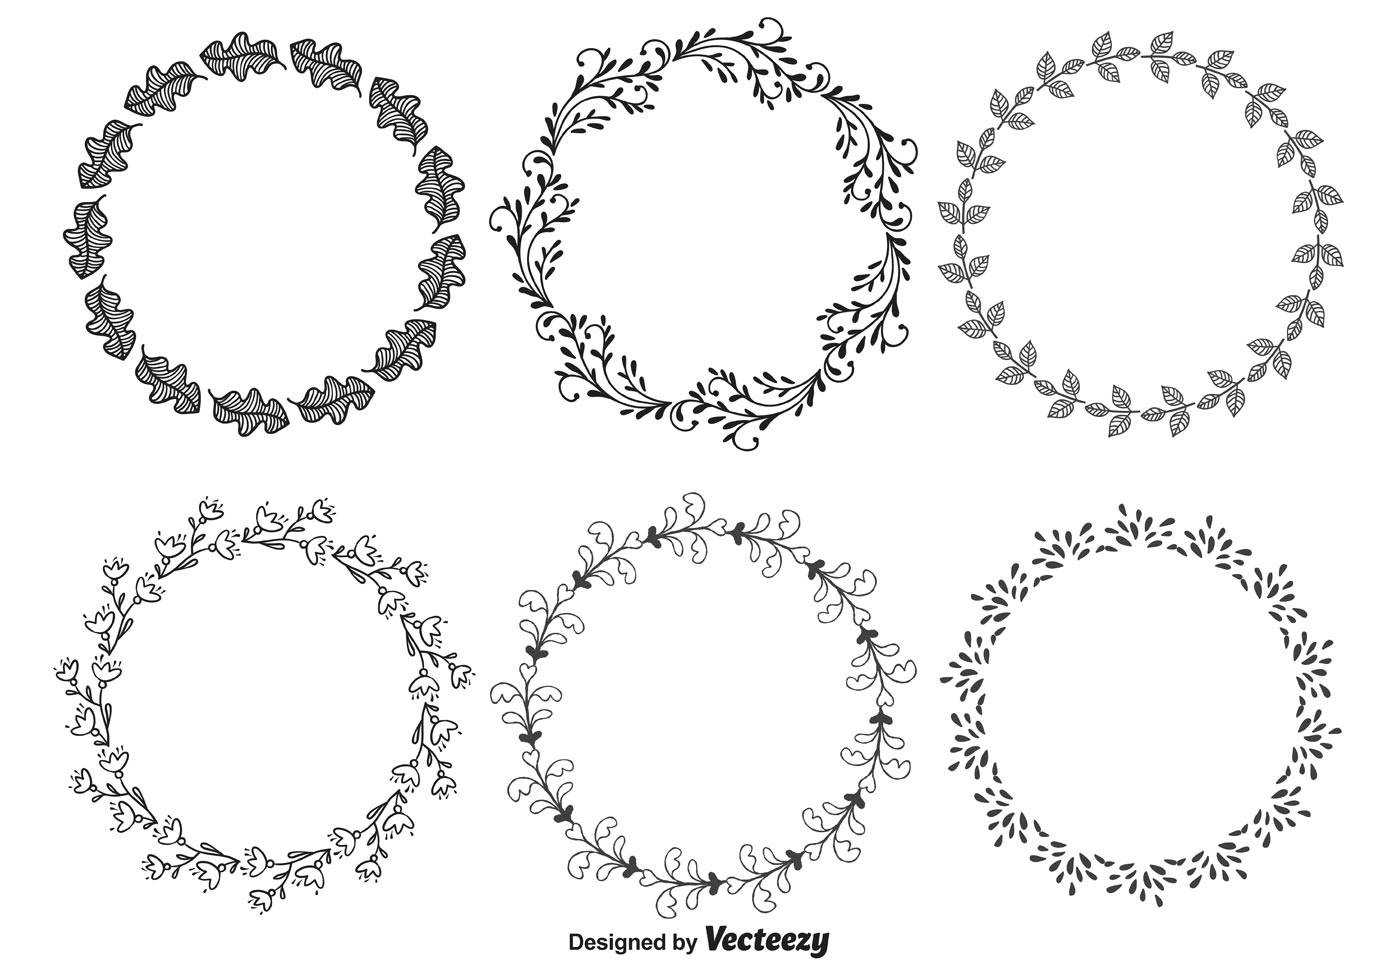 Hand Drawn Decorative Frames - Download Free Vector Art, Stock ...